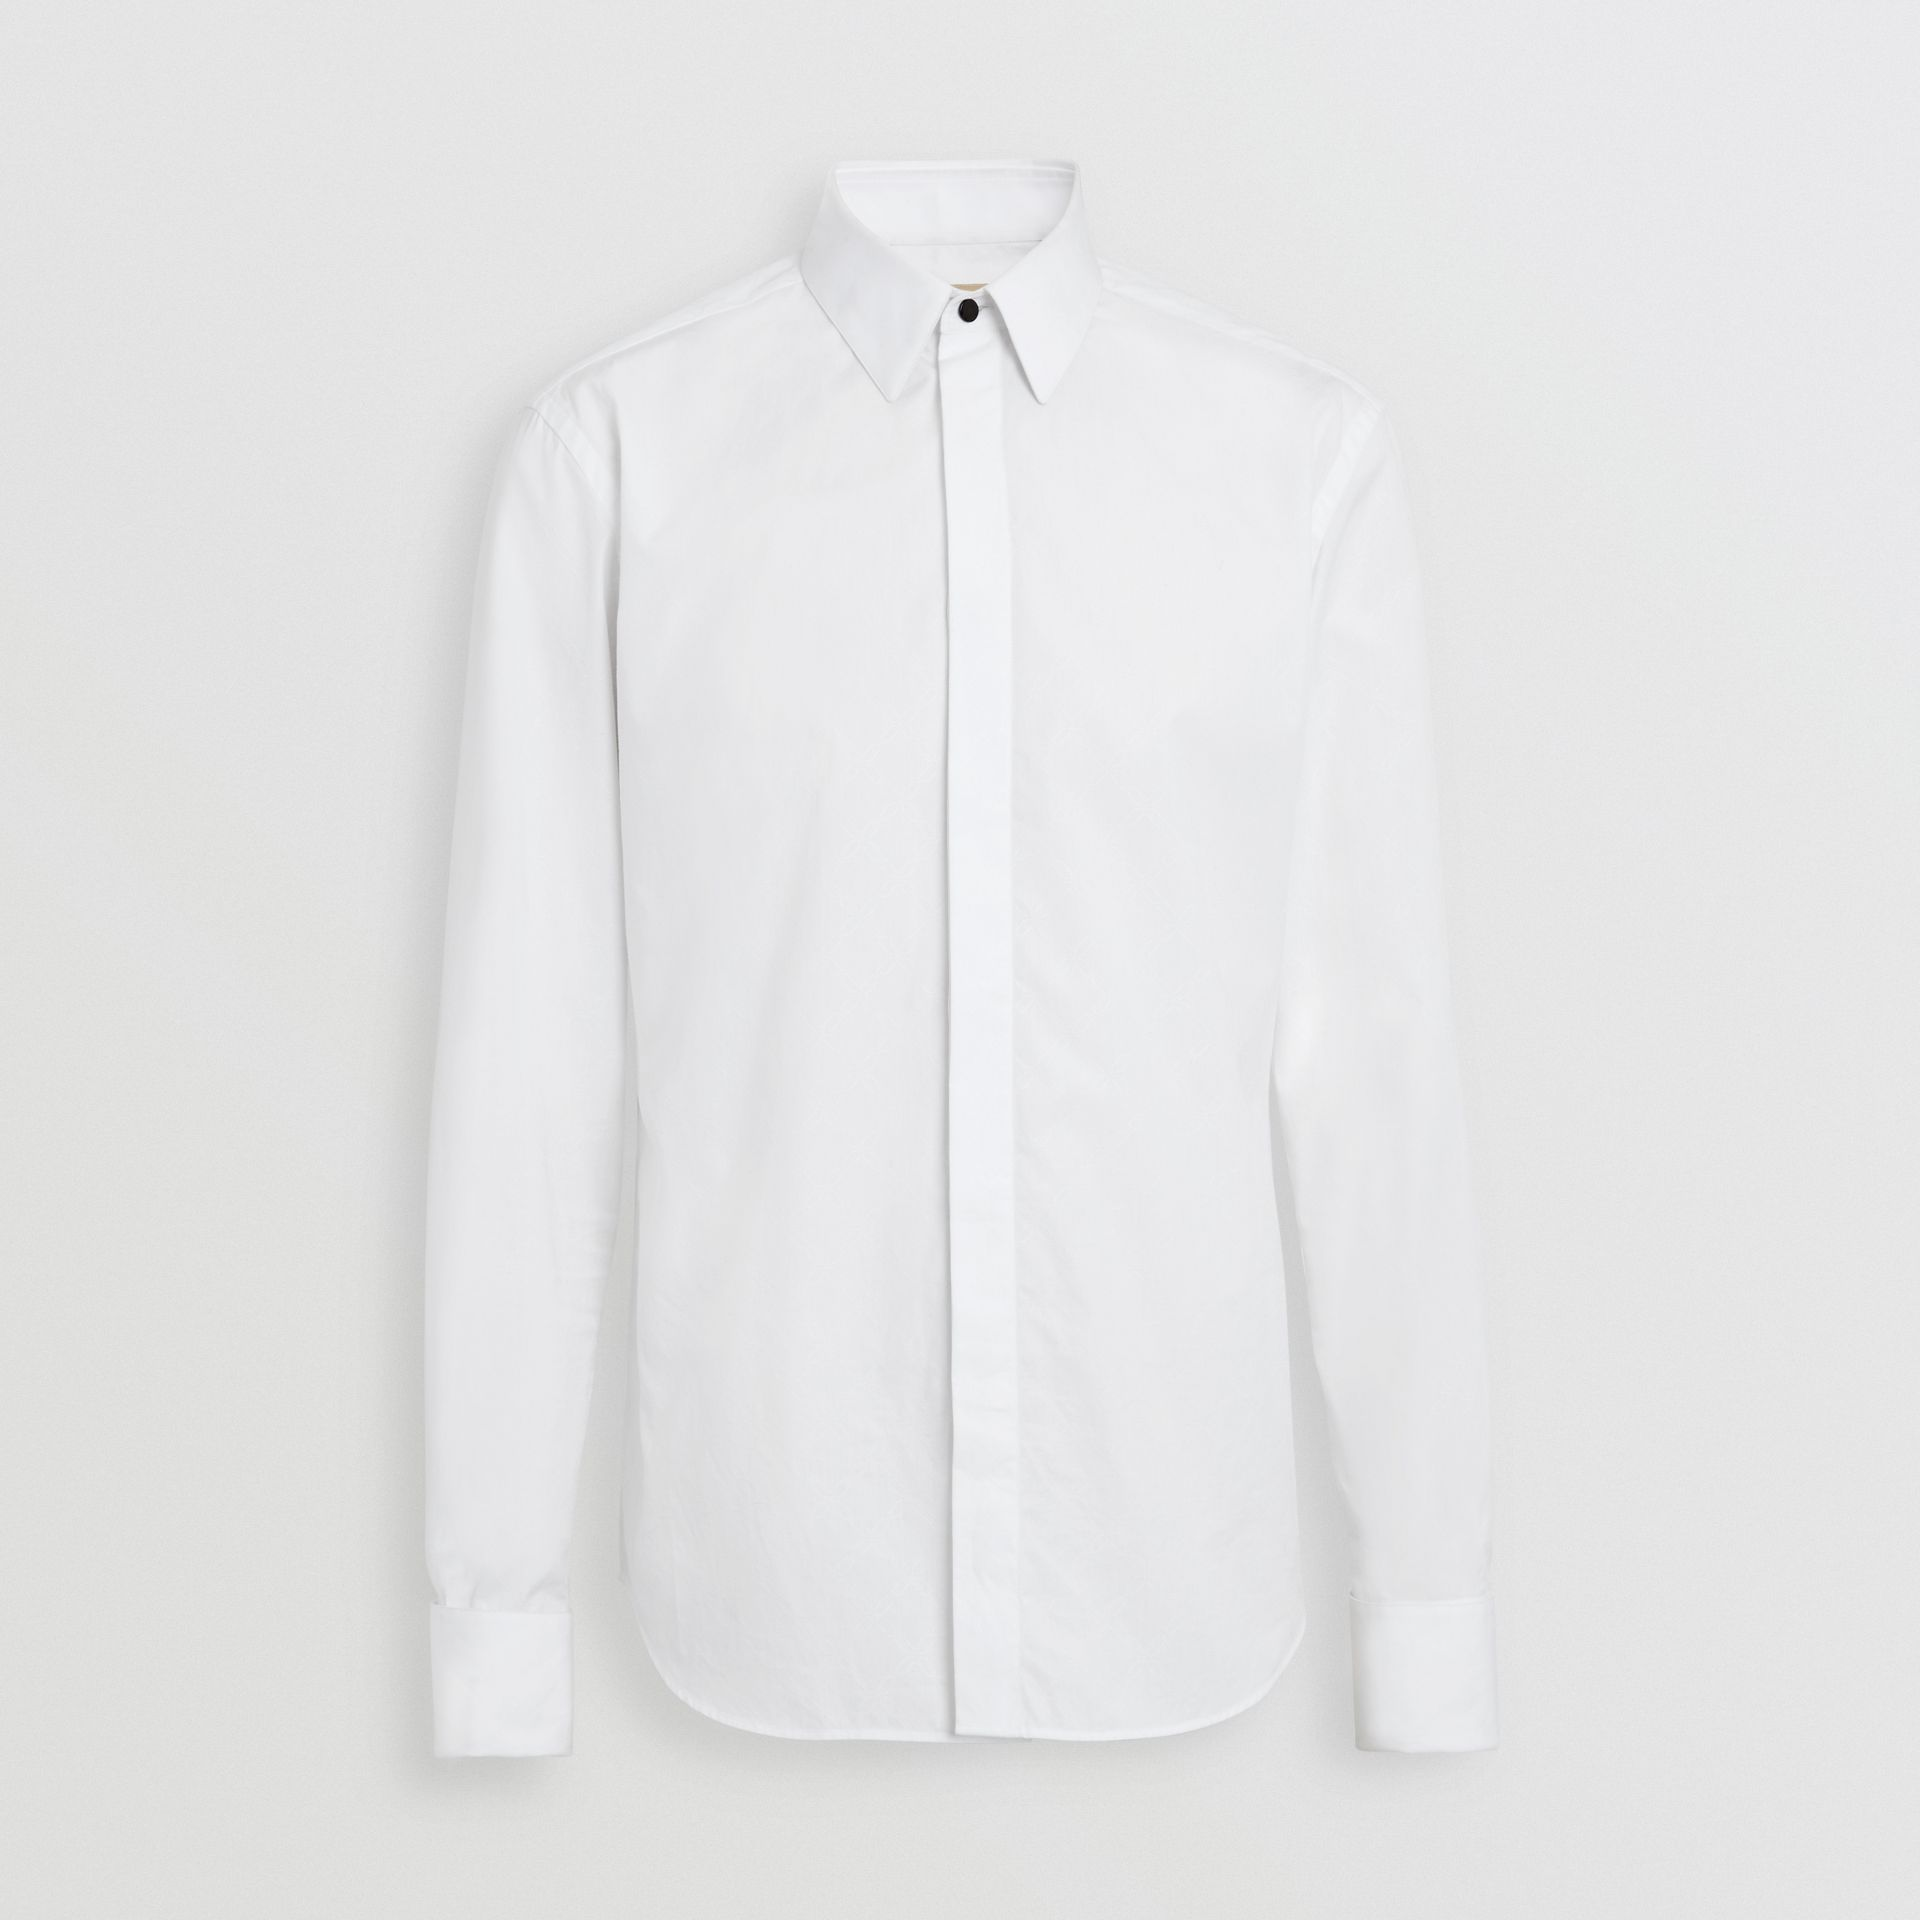 Classic Fit Link Cotton Jacquard Dress Shirt in White - Men | Burberry - gallery image 3